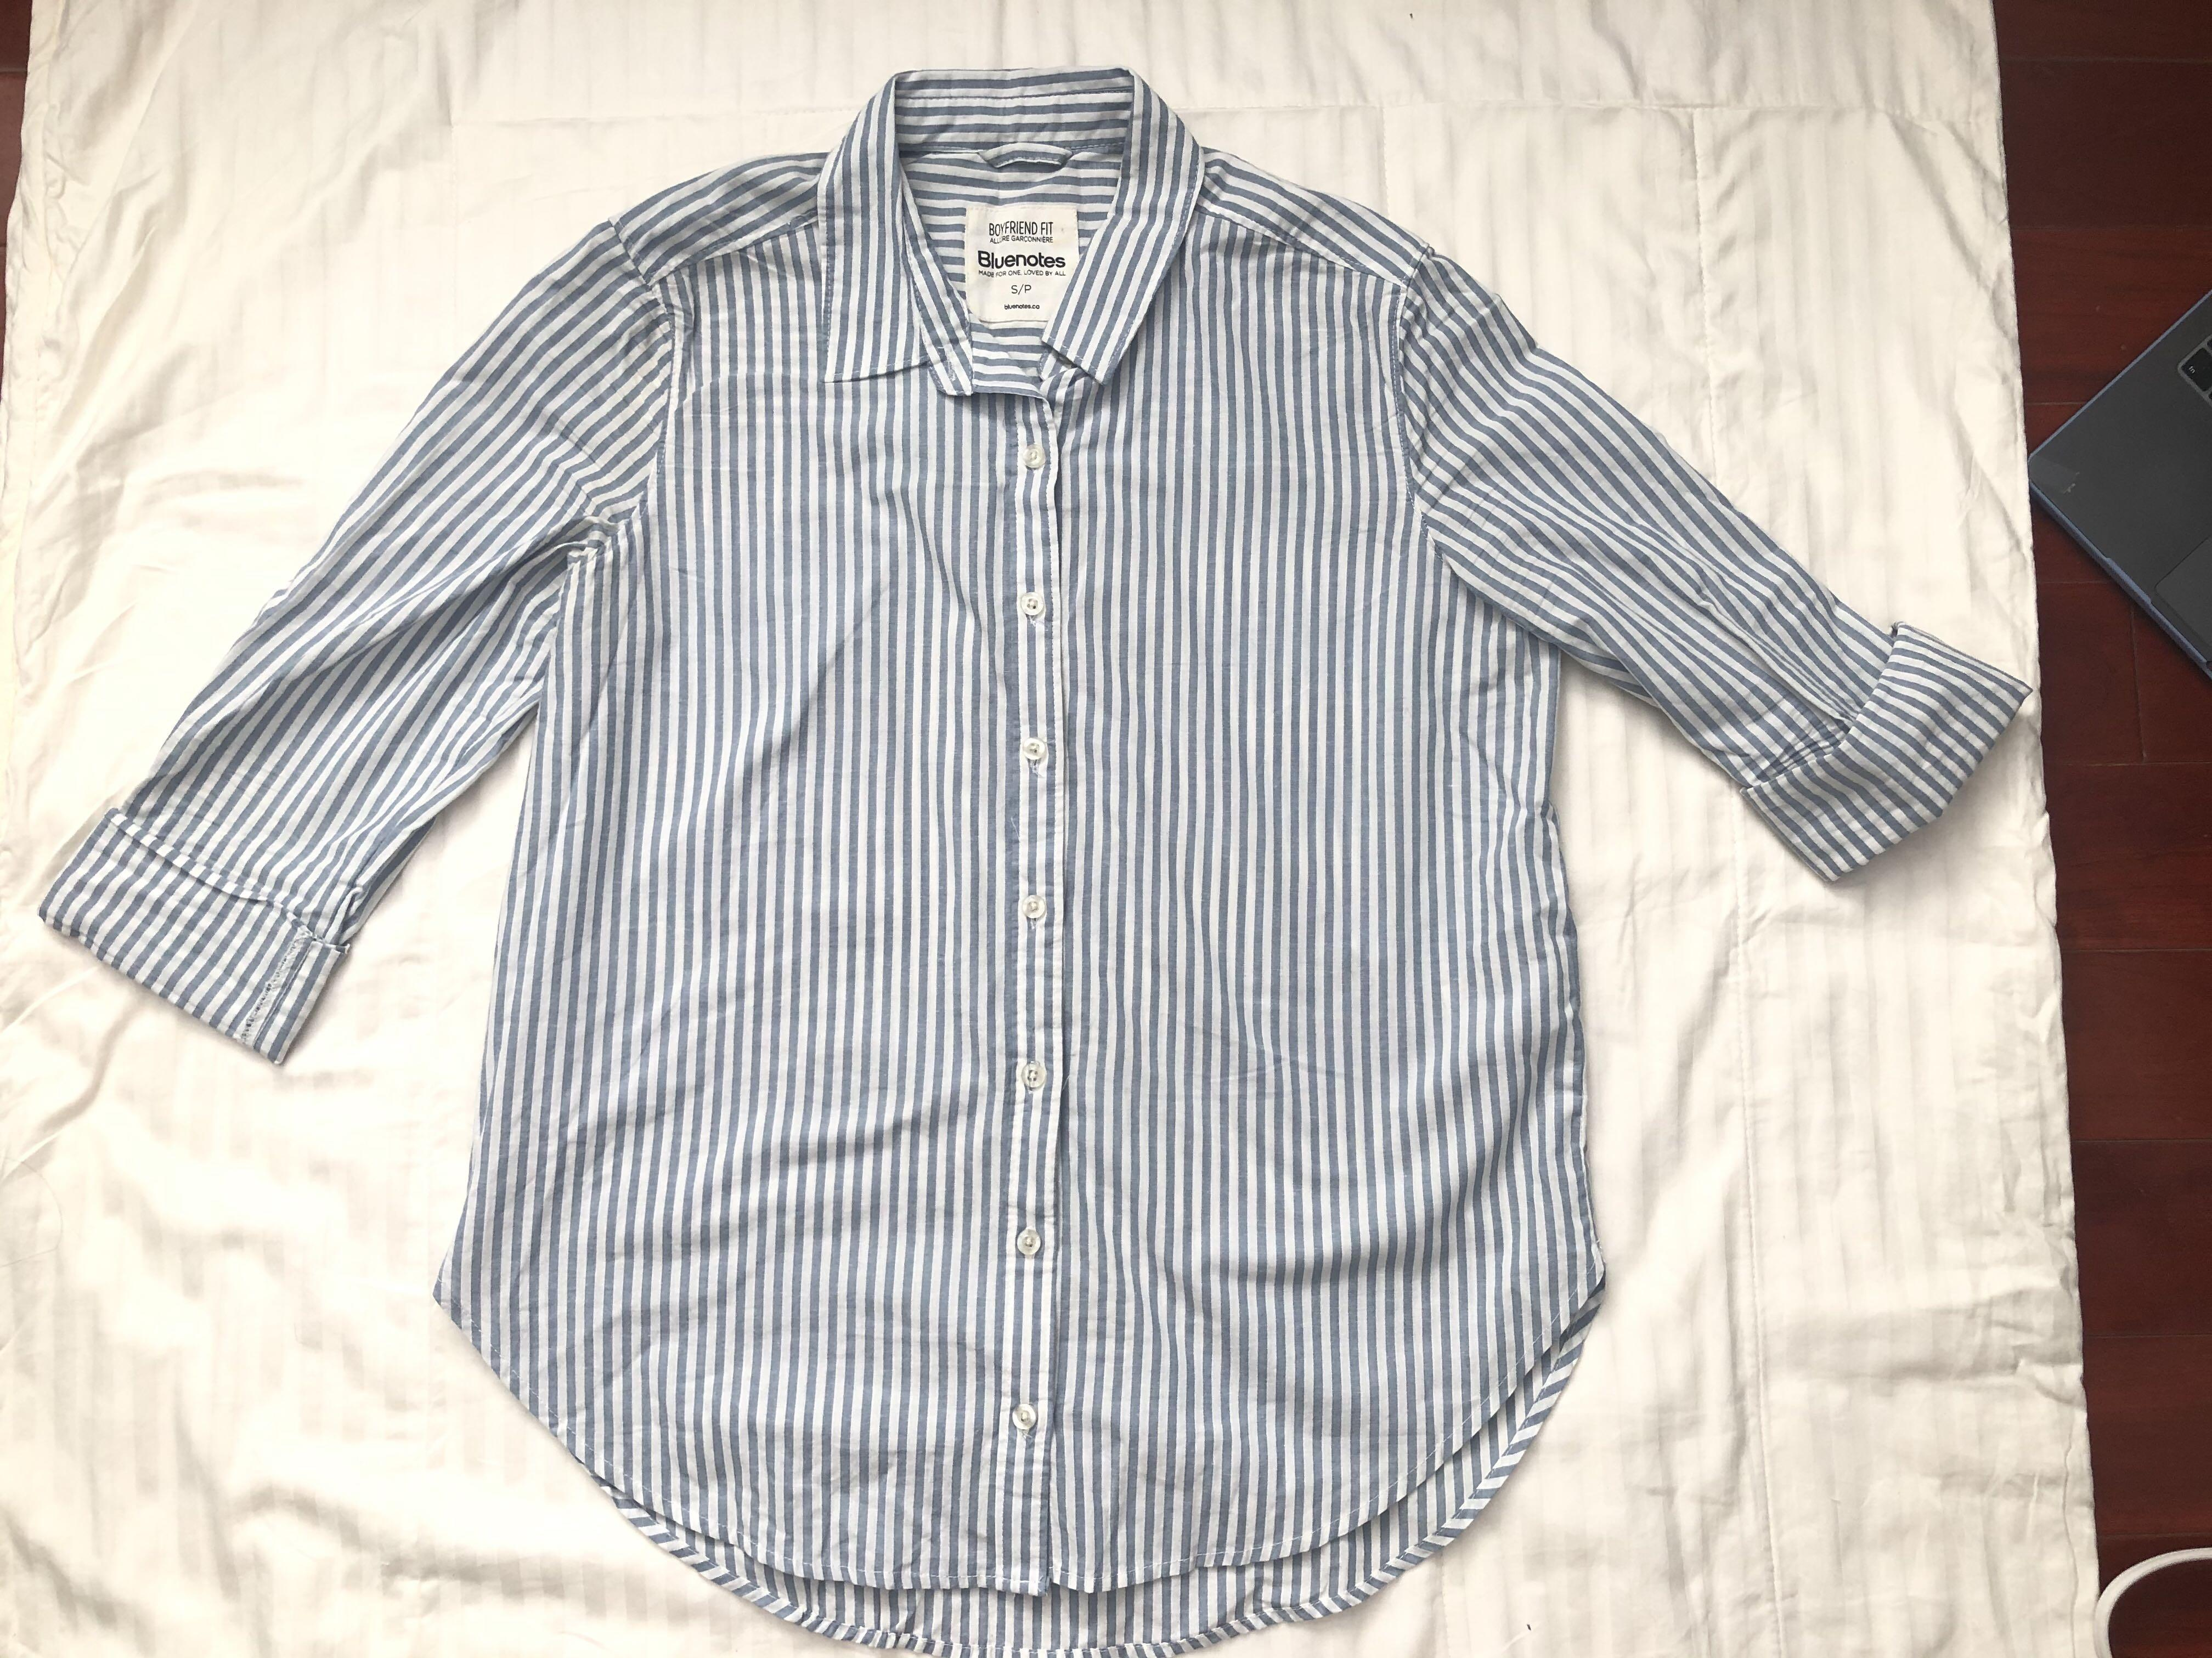 Bluenotes Striped Button Up